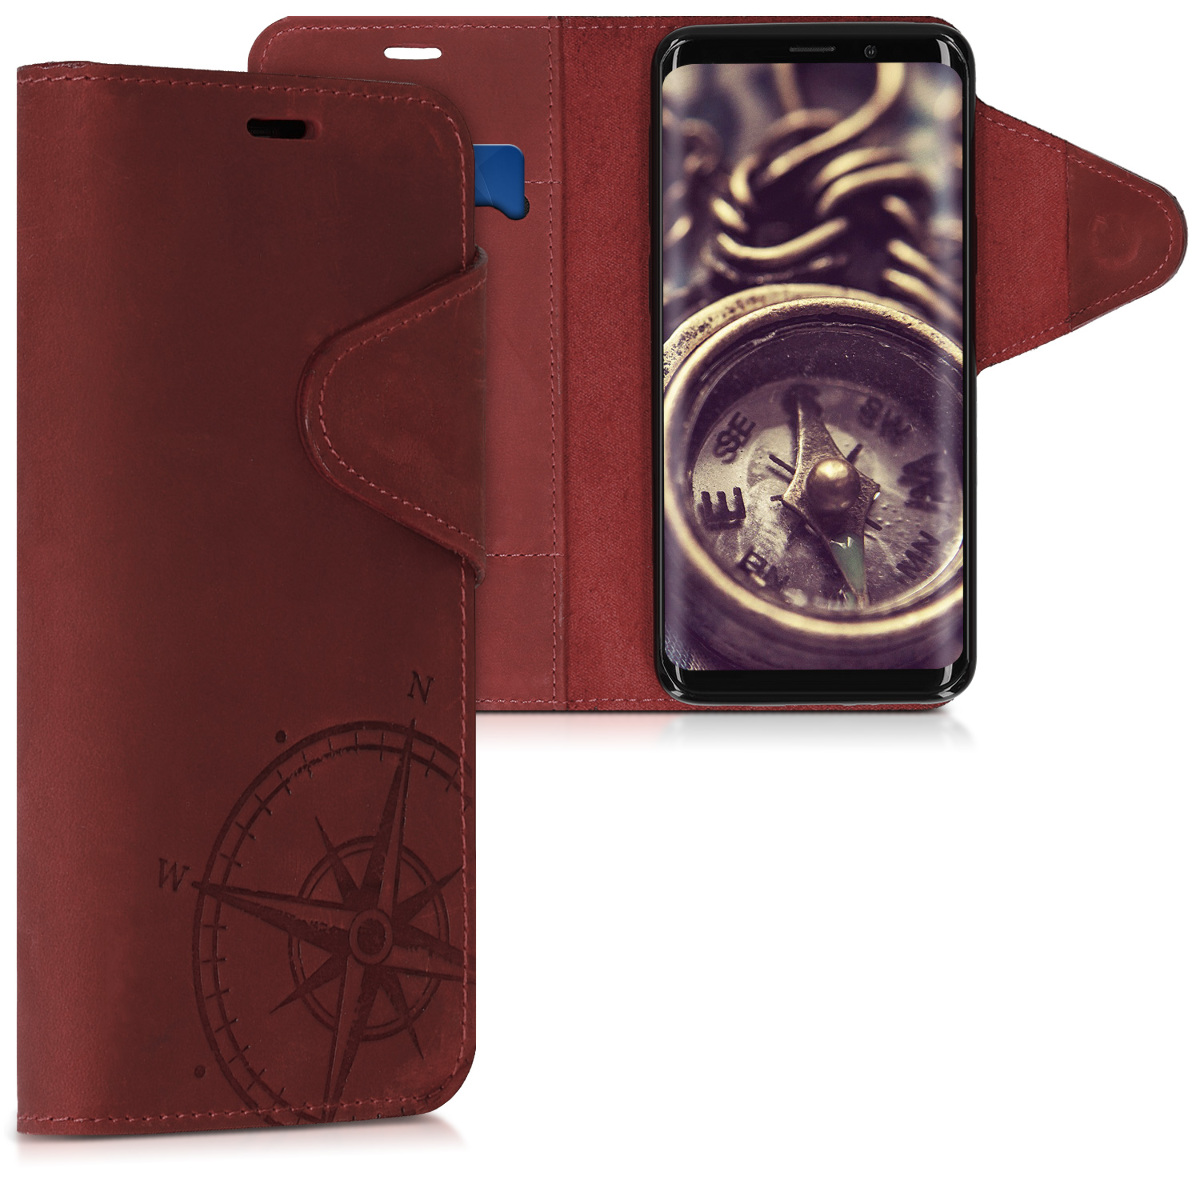 Pouzdro peněženka pro Samsung Galaxy S9 - Real Leather Book Style Cover with Card Slot - Navigational Compass Dark Red